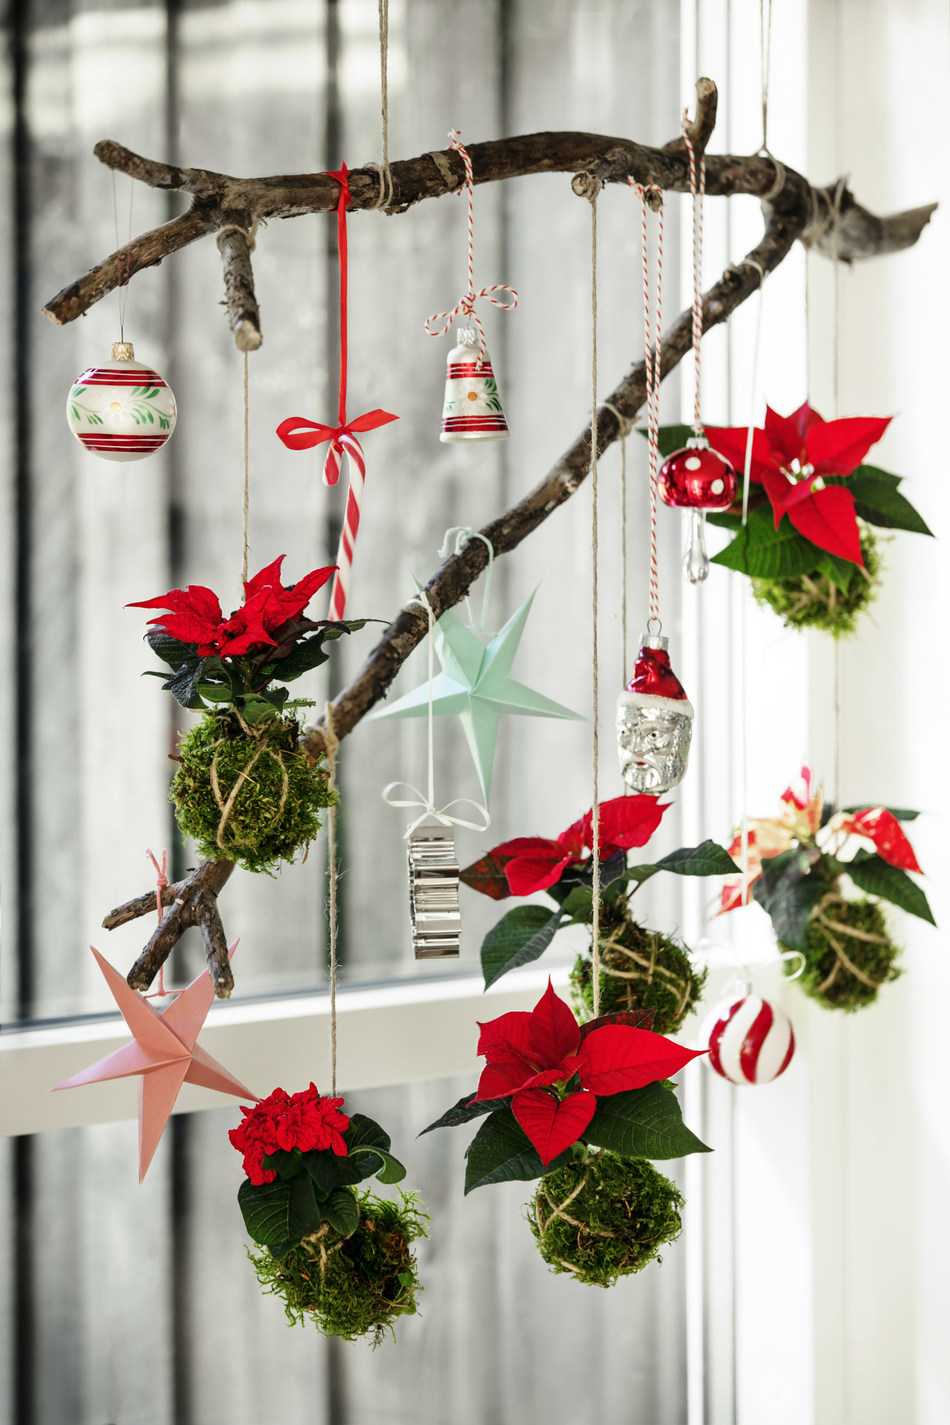 For a different way to display mini poinsettias, try encasing the root ball in moss and suspending from the ceiling. (PRNewsfoto/Stars for Europe)